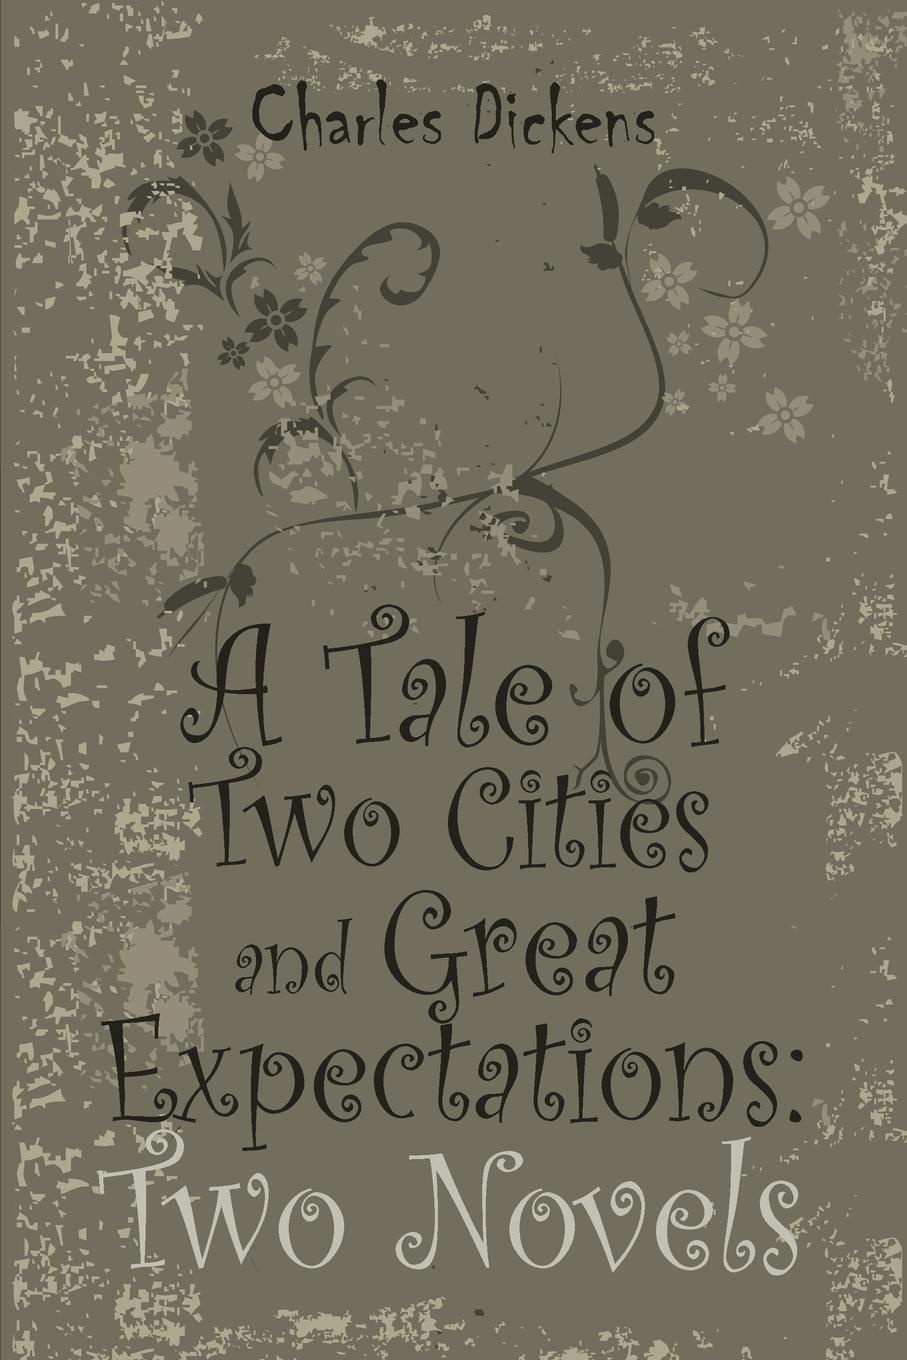 Чарльз Диккенс A Tale of Two Cities and Great Expectations. Two Novels купить недорого в Москве